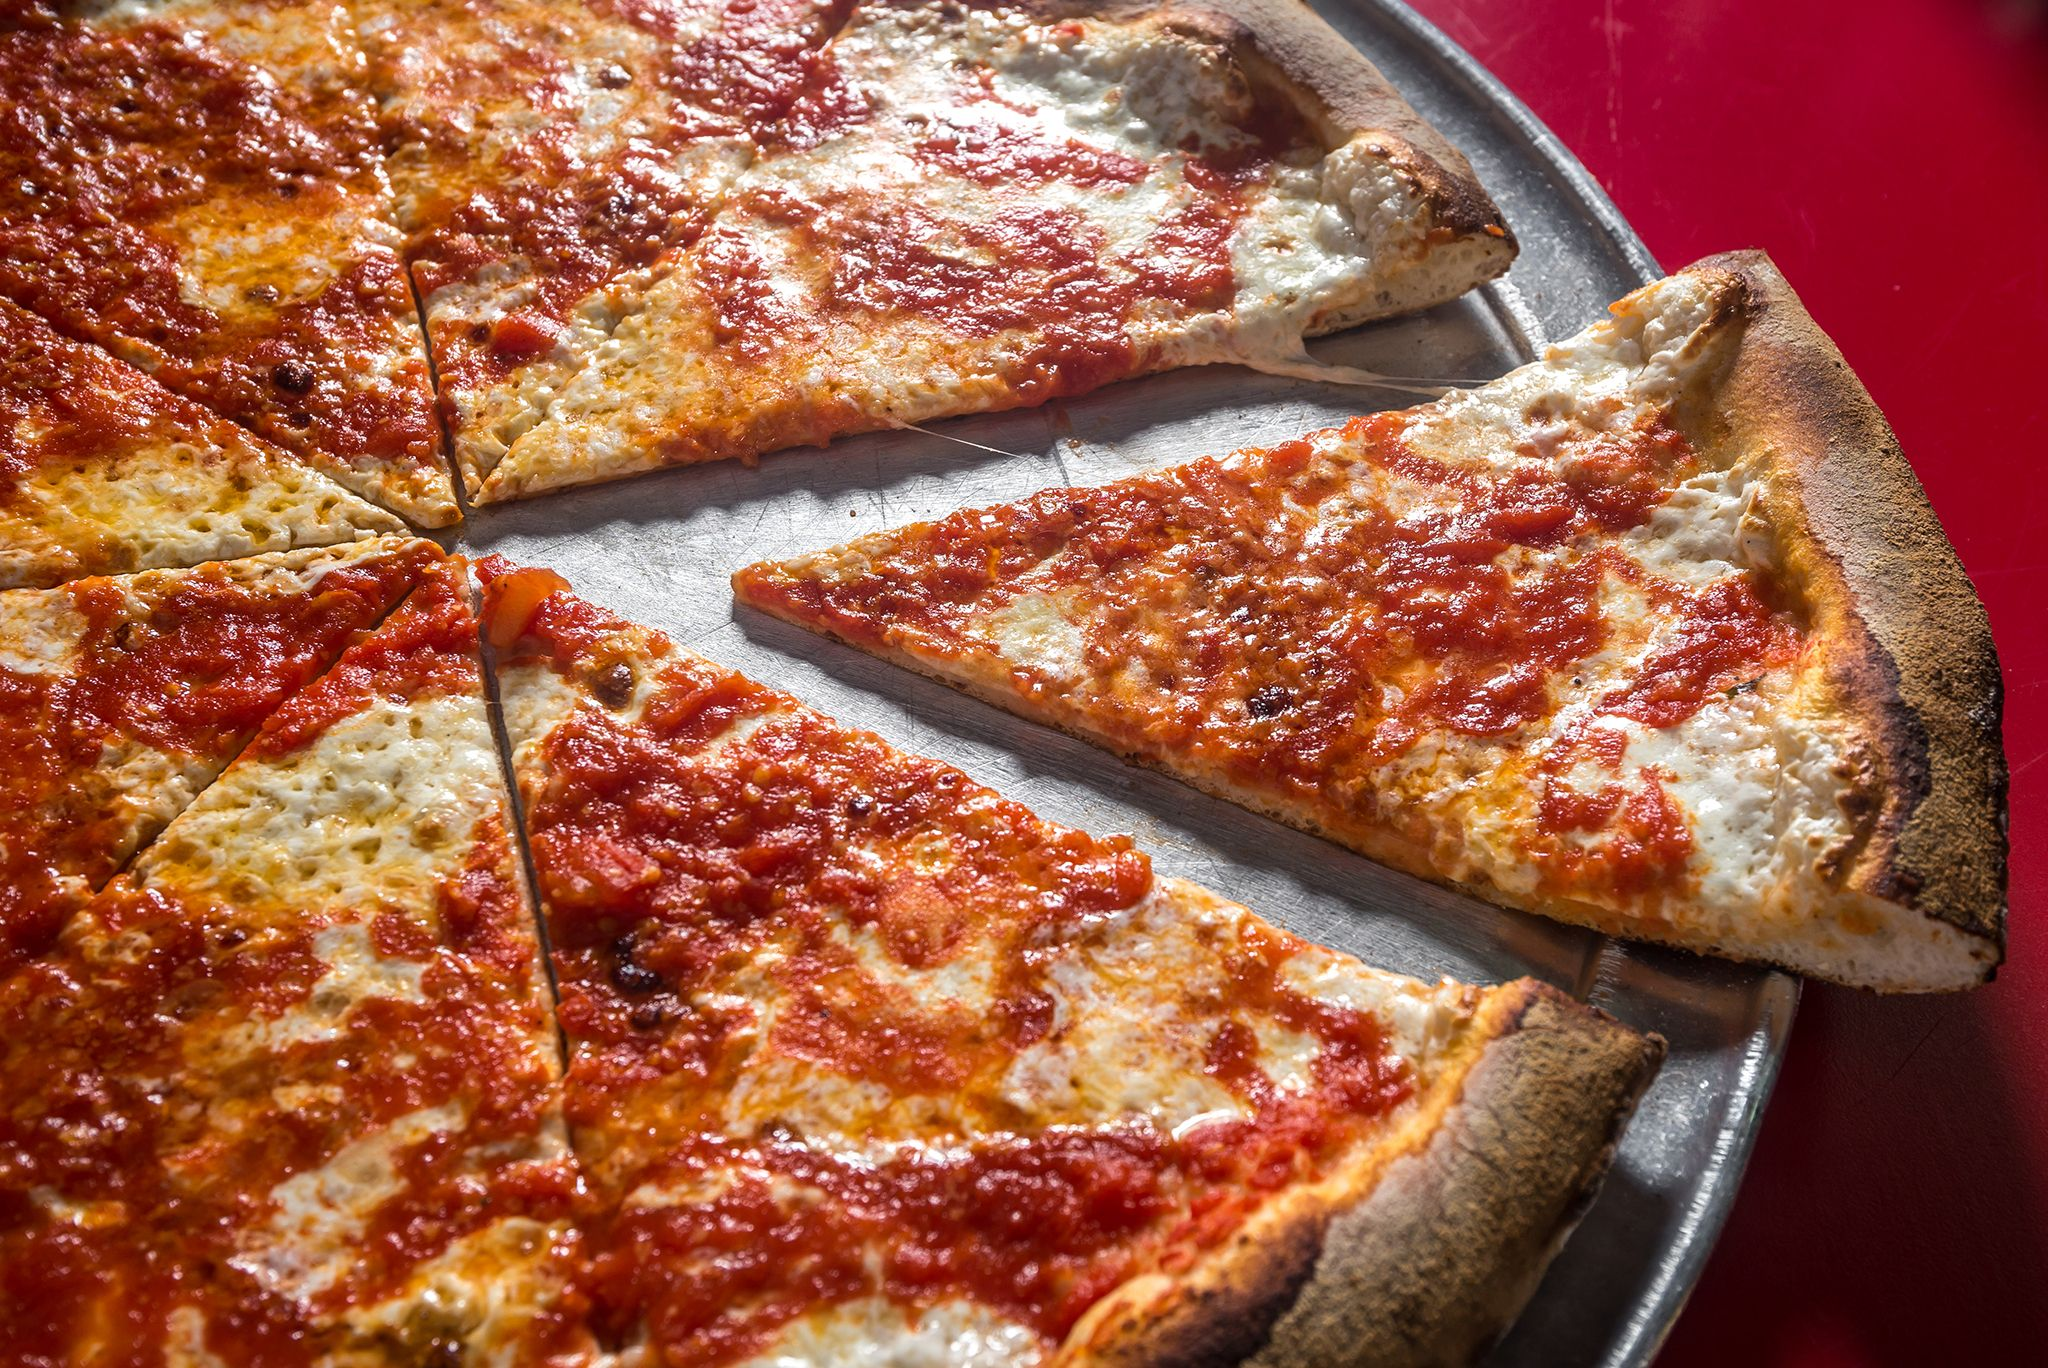 Timeout Nyc The Best New York Pizzas Our Five Borough Tour Of The Best New York Pizza Skips From Legendary Ins Utions To New Wave Joints